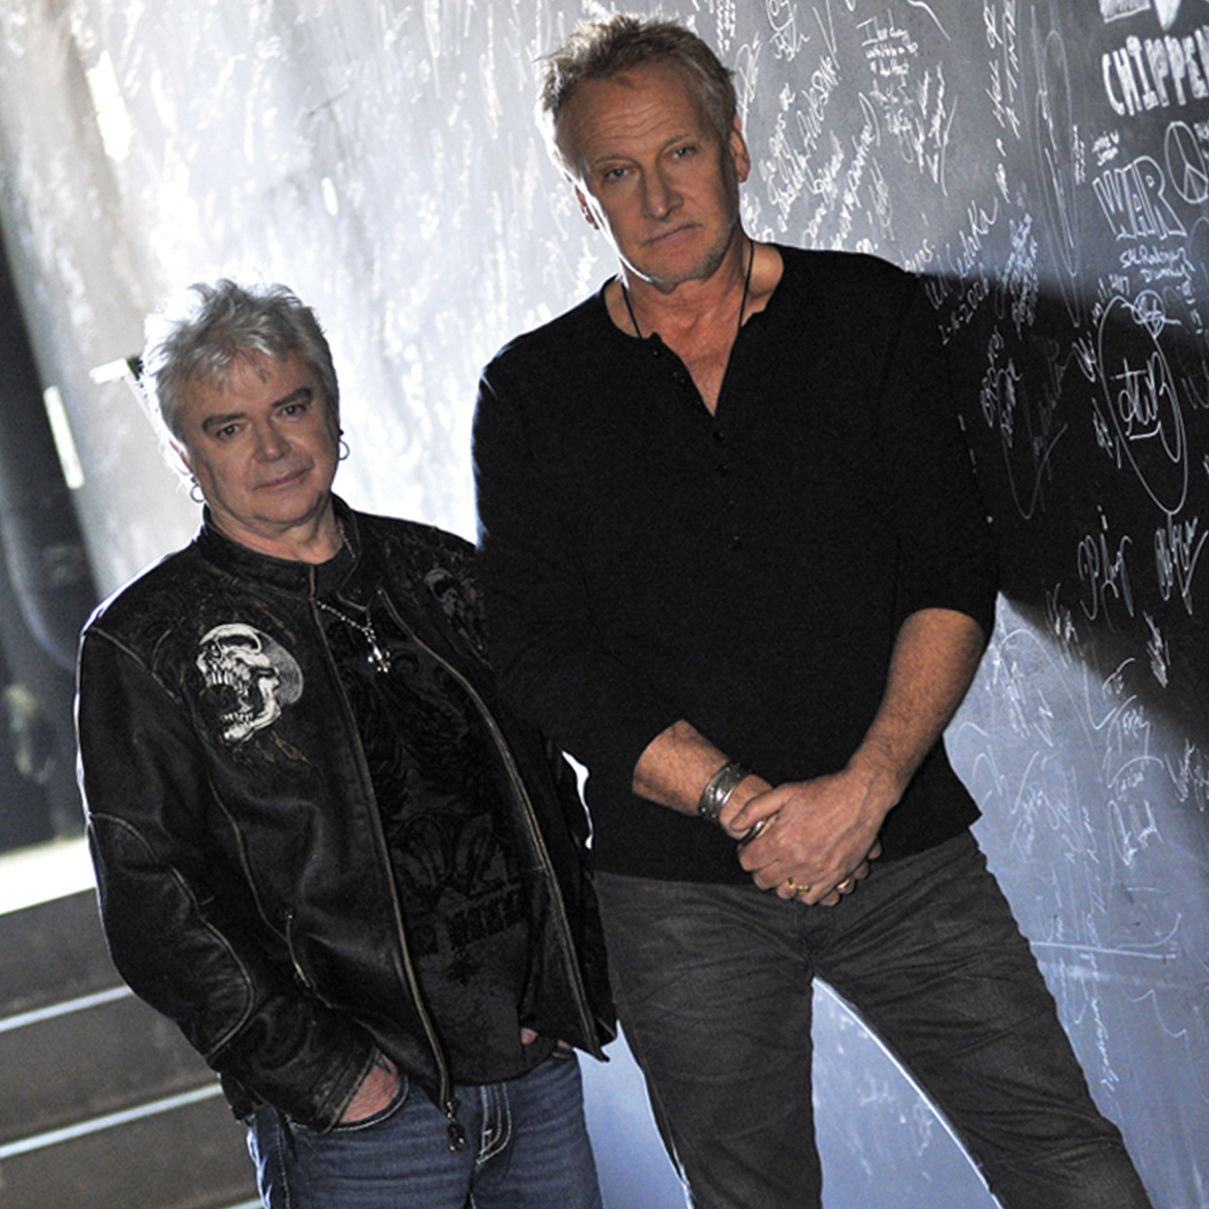 """Air Supply's Graham Russell & Russell Hitchcock became instant friends with their common love for The Beatles and, of course, singing. After seven top-five singles included on albums """"Lost in Love,"""" """"The One That You Love,"""" """"Now & Forever,"""" and """"The Greatest Hits,"""" Air Supply's simple yet majestic songs create unique sounds and lasting memories. #Spokane"""